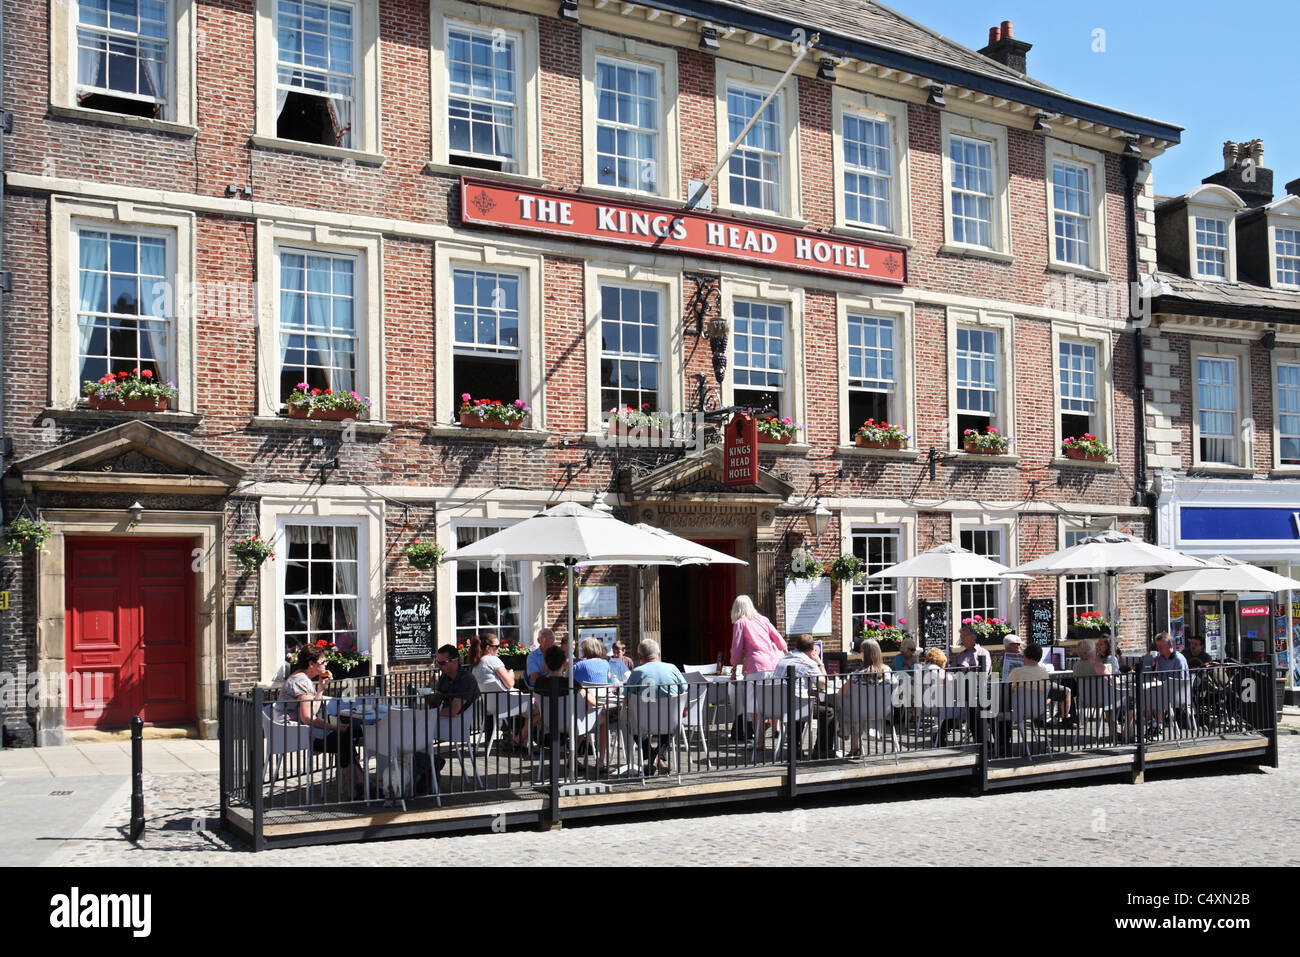 People dining outside the Kings Head Hotel in Richmond, Yorkshire, England, UK - Stock Image